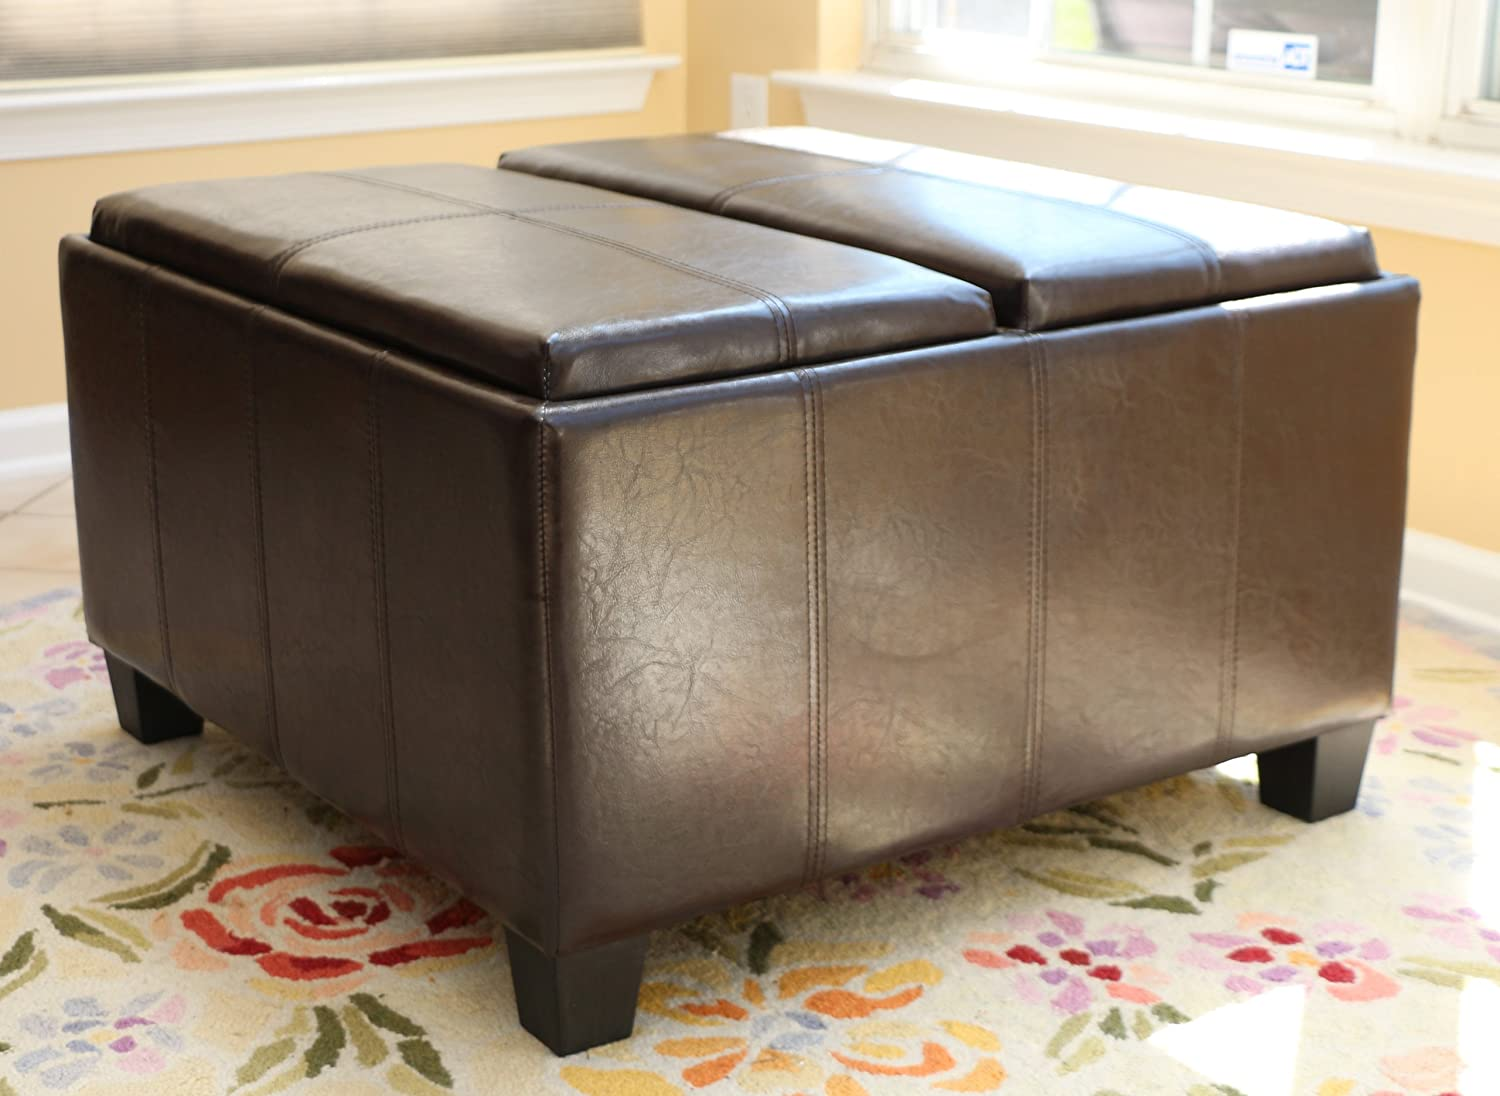 Amazoncom Home Life Leather Espresso Tray Top Storage Ottoman